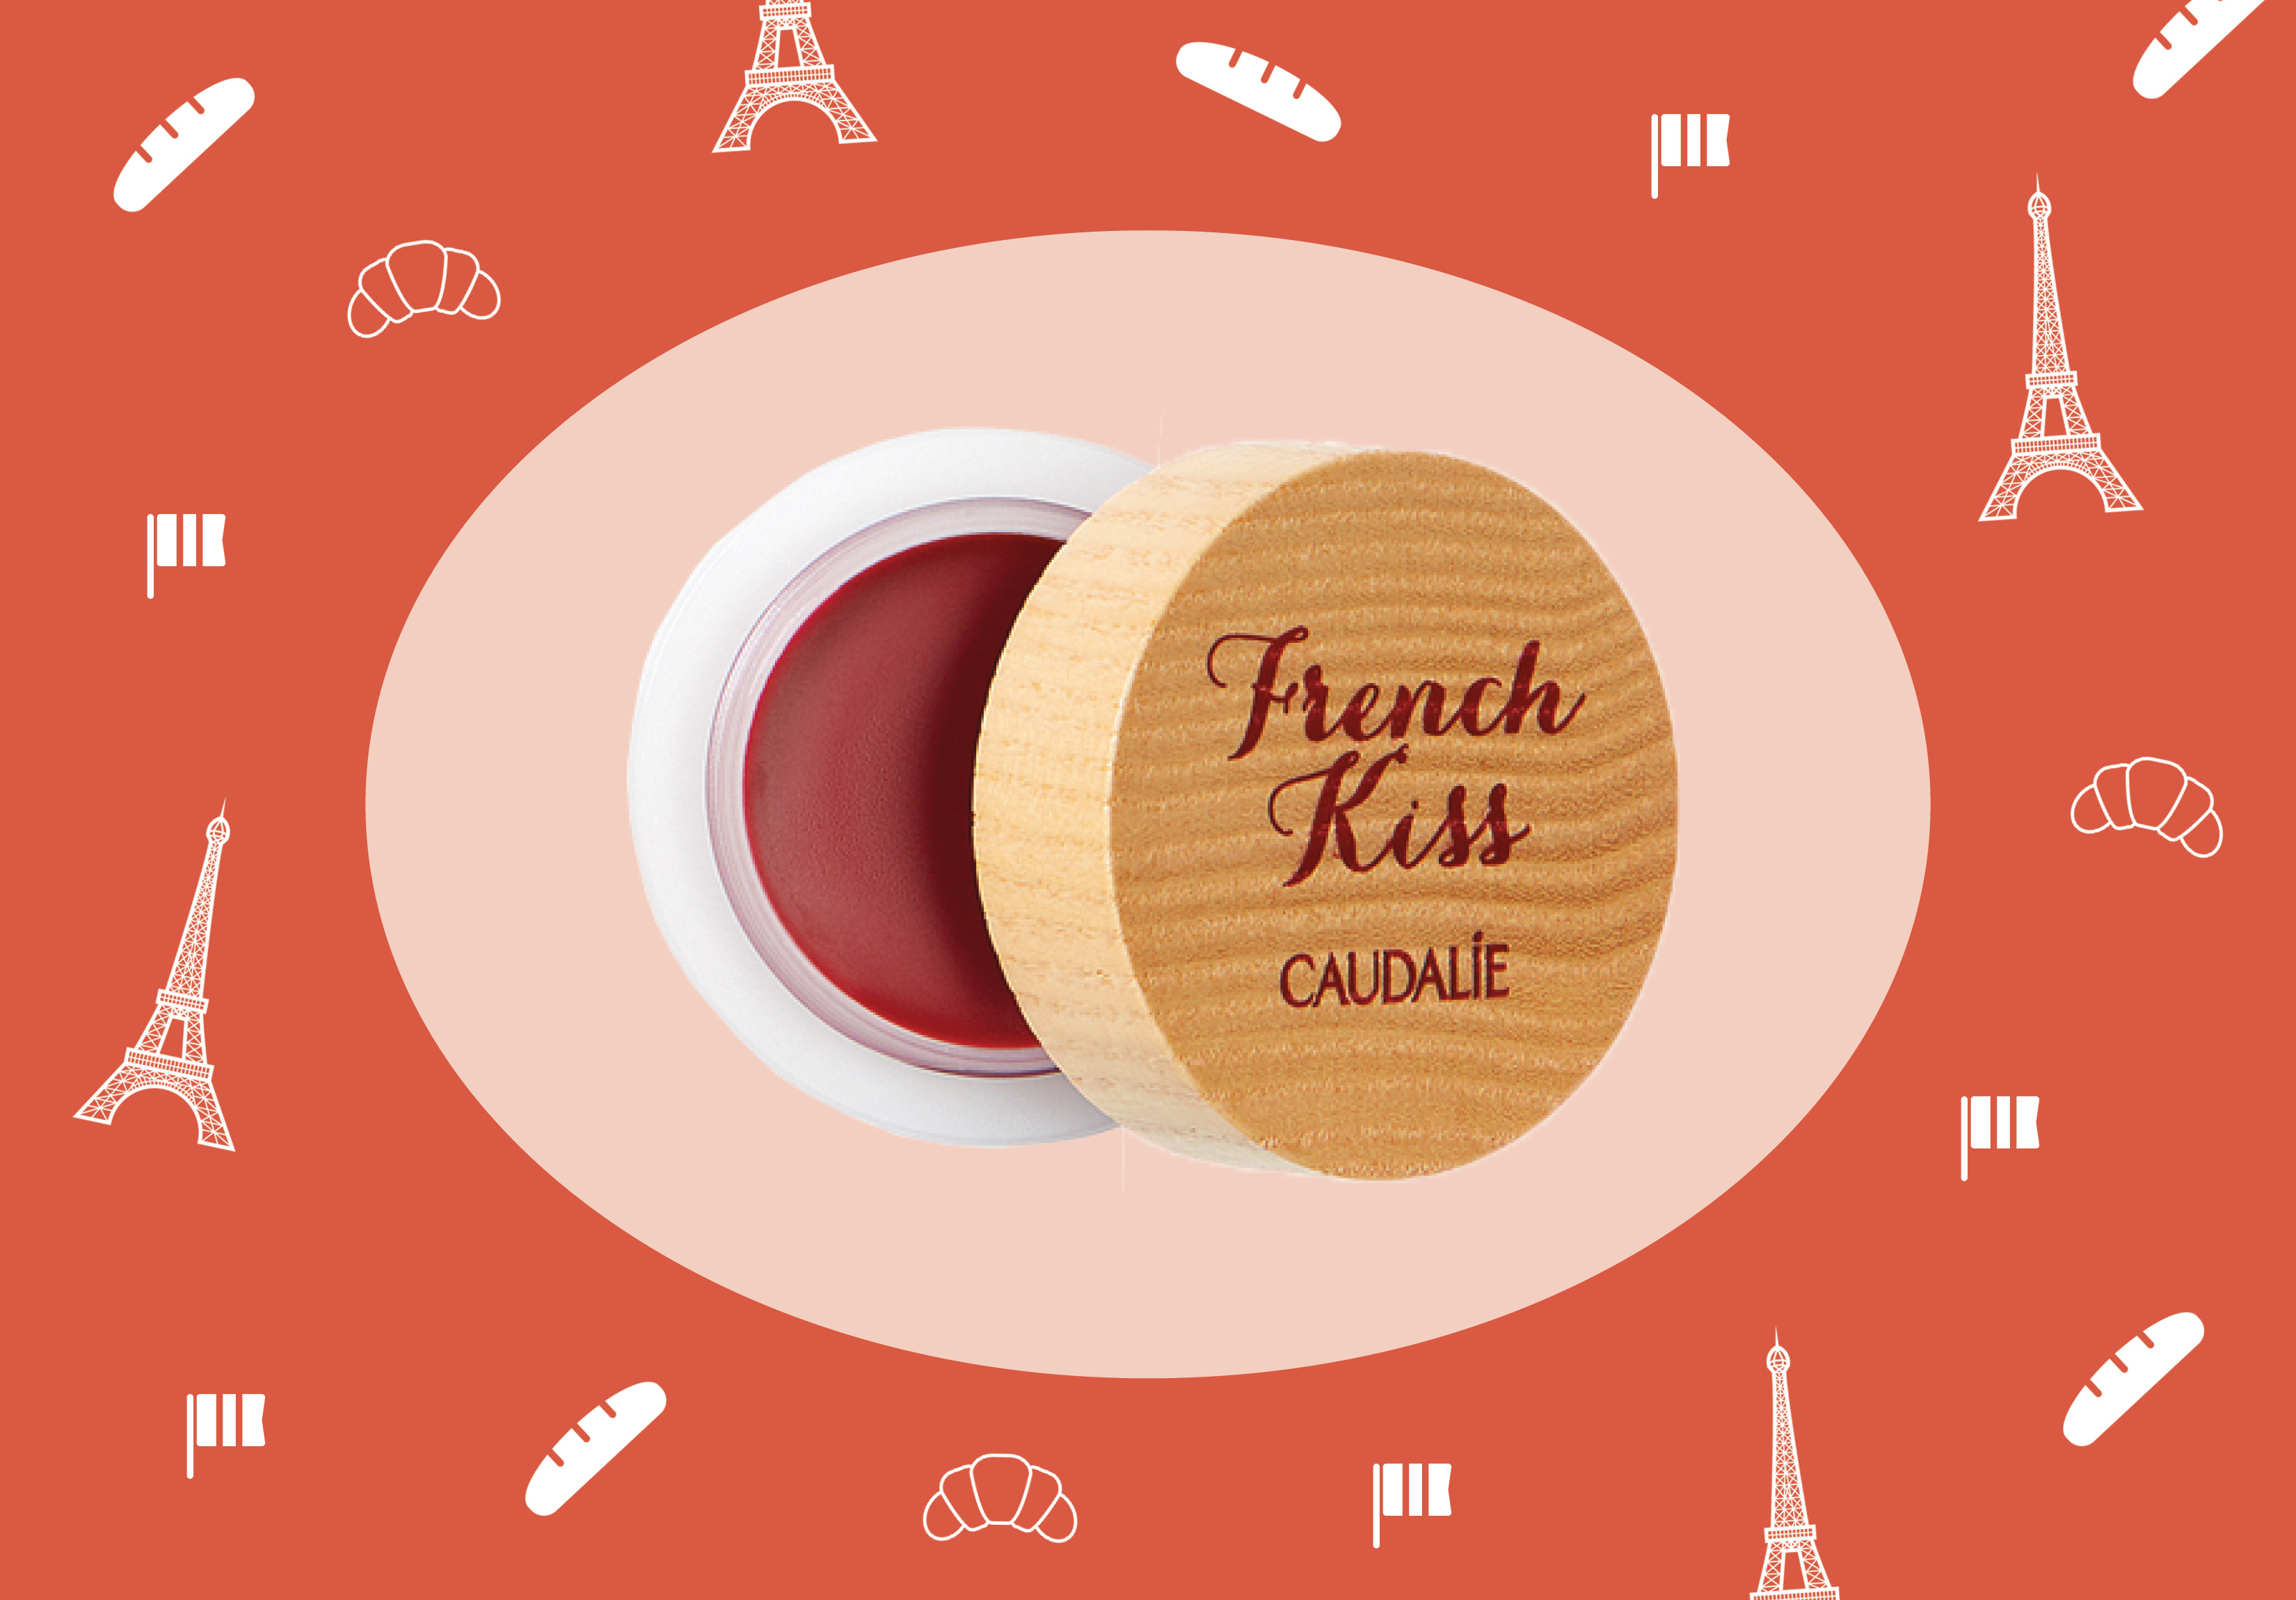 This lip balm made me feel like I transformed into a fancy French girl